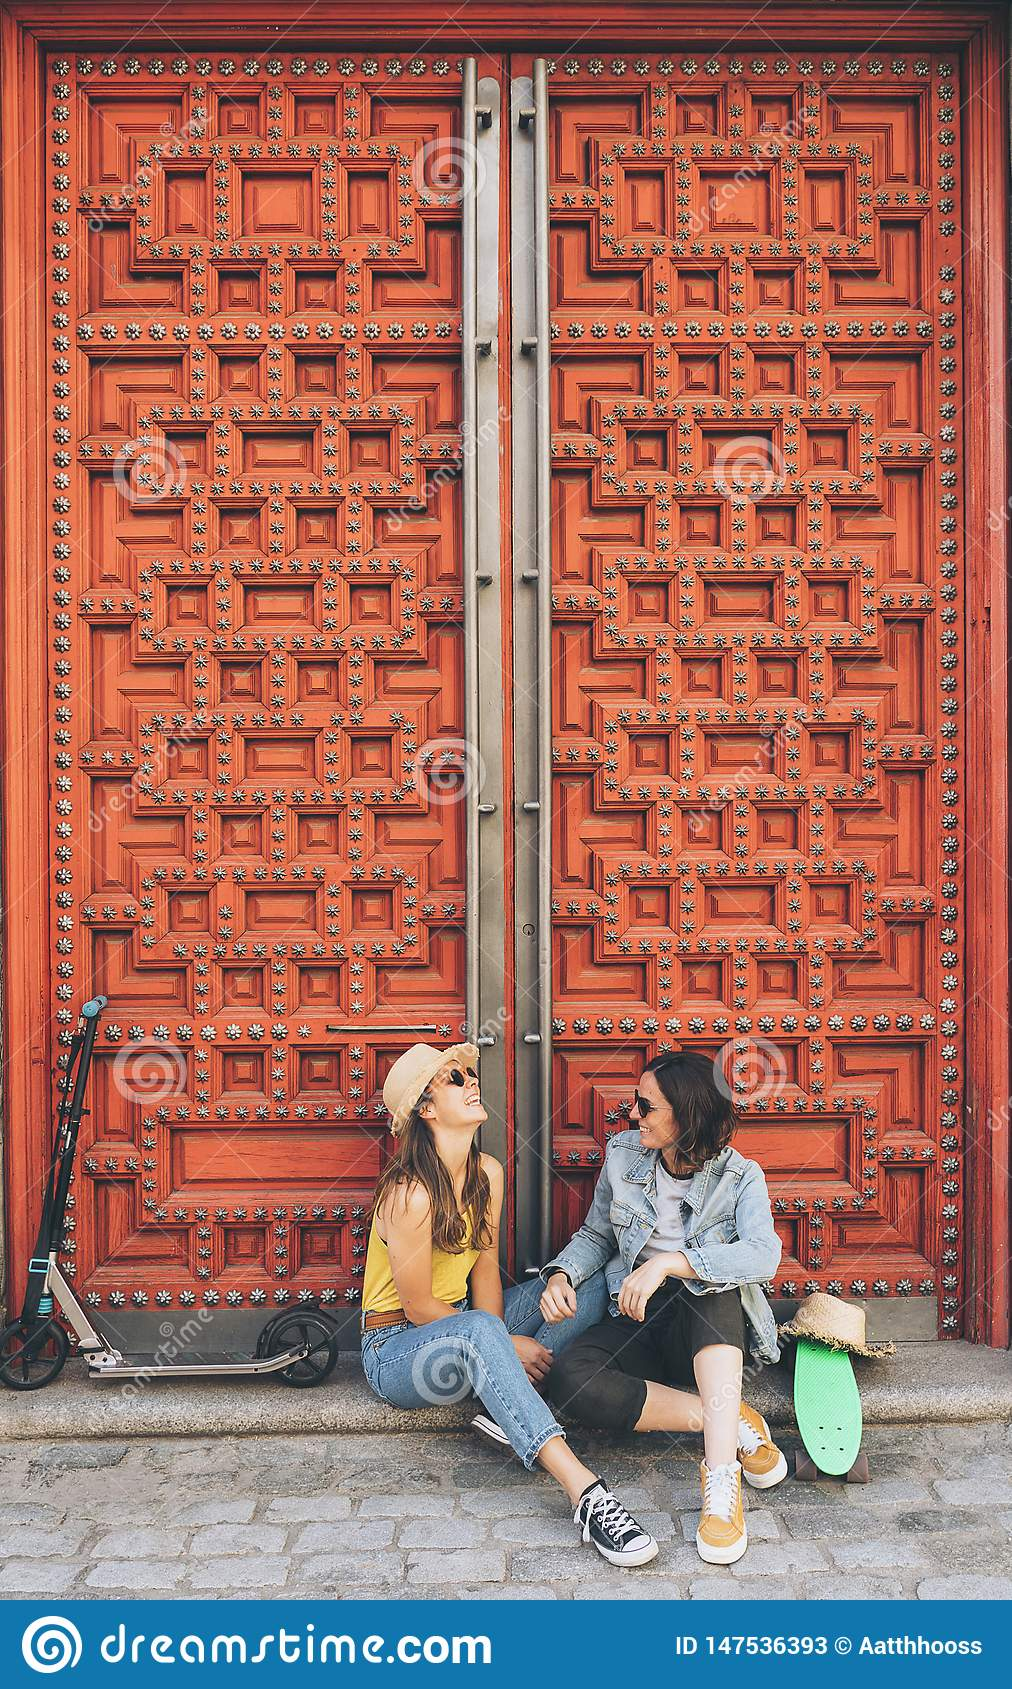 Young women gay couple looking and smiling each other in a red door background. Same sex happiness and joyful concept